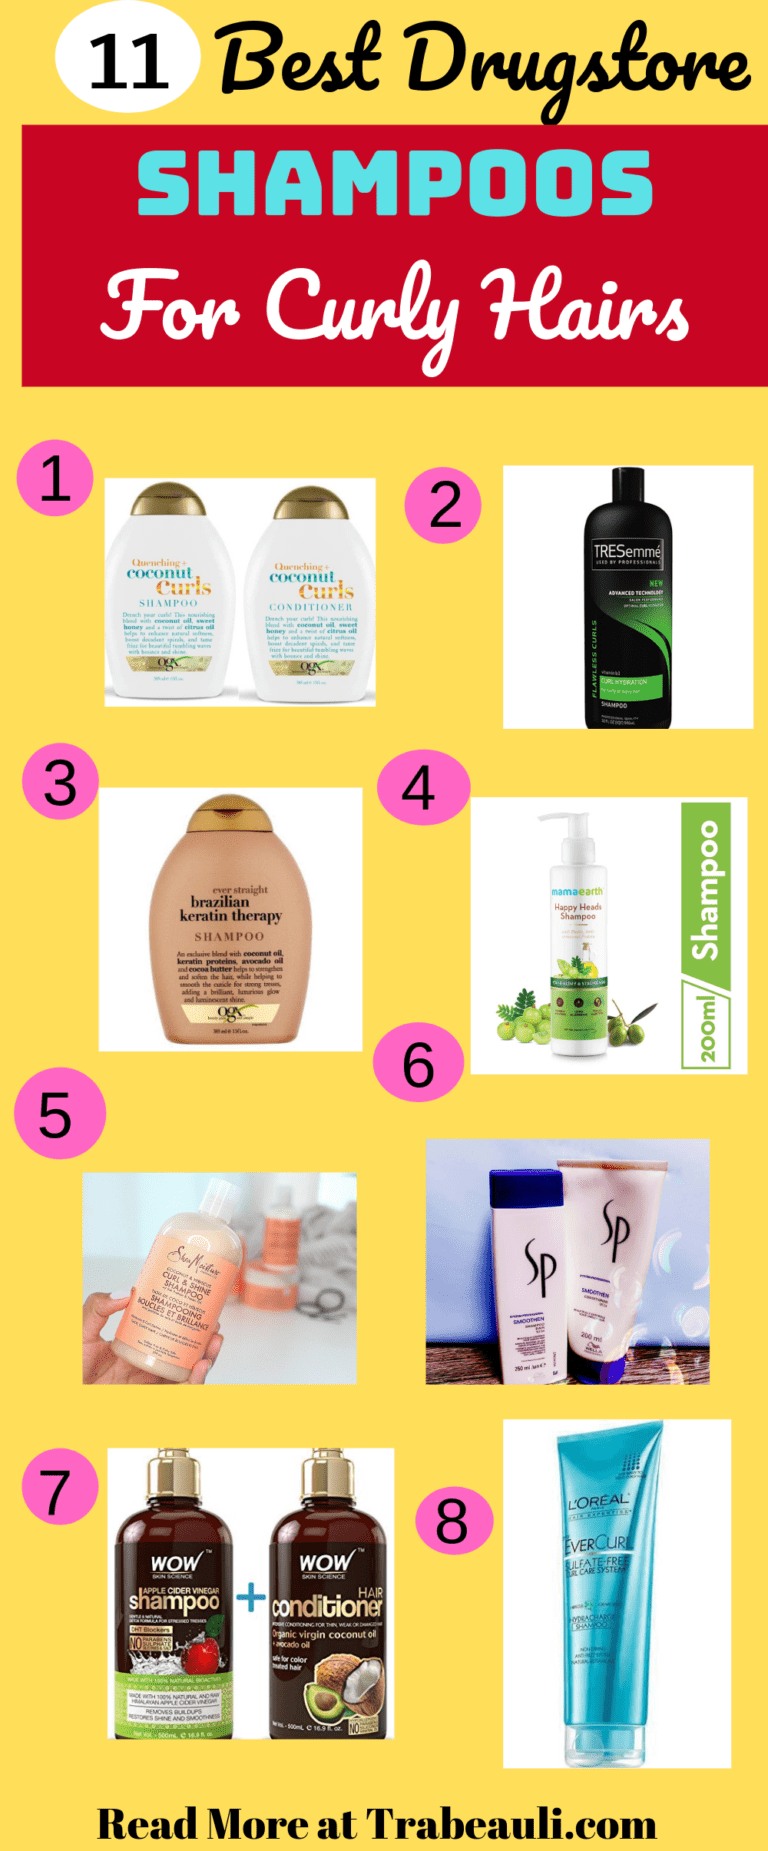 11 Best Shampoo For Curly Hair Sulfate-Free In India 2020